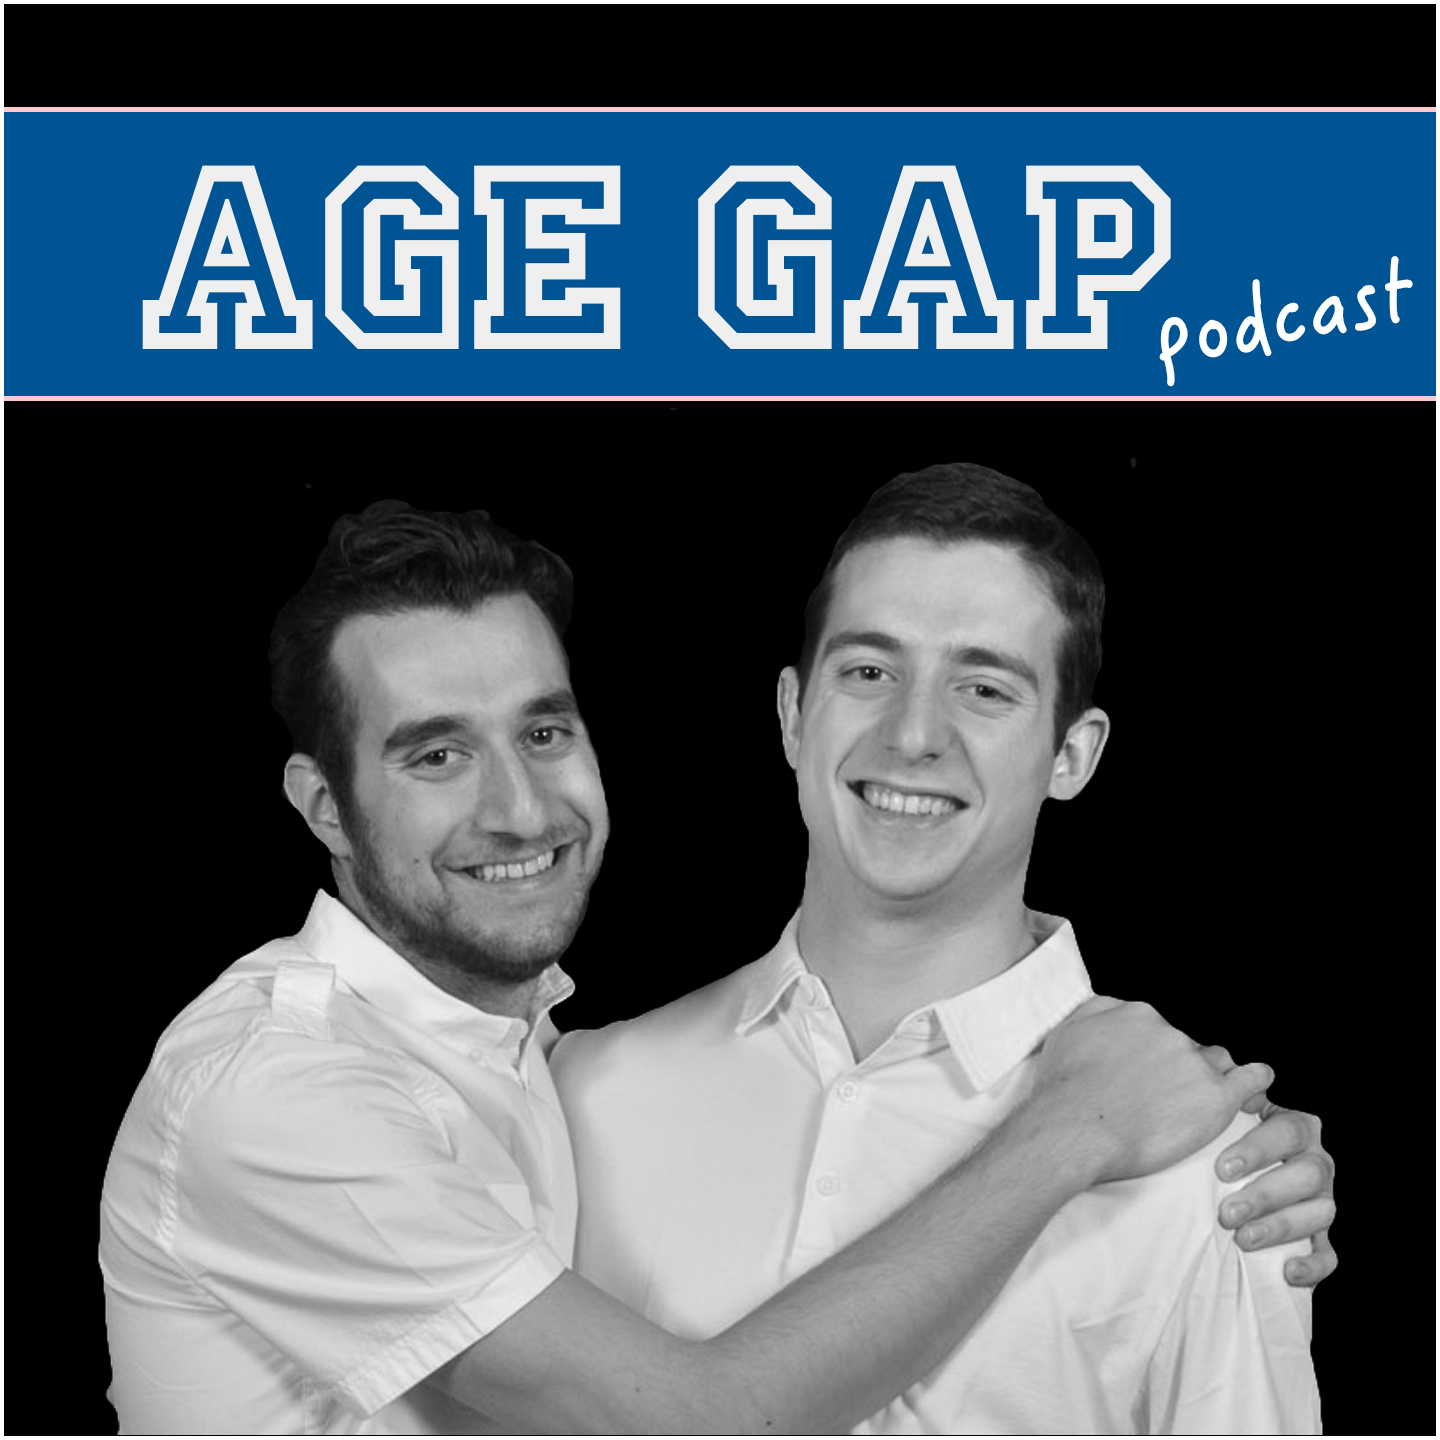 Age Gap Podcast